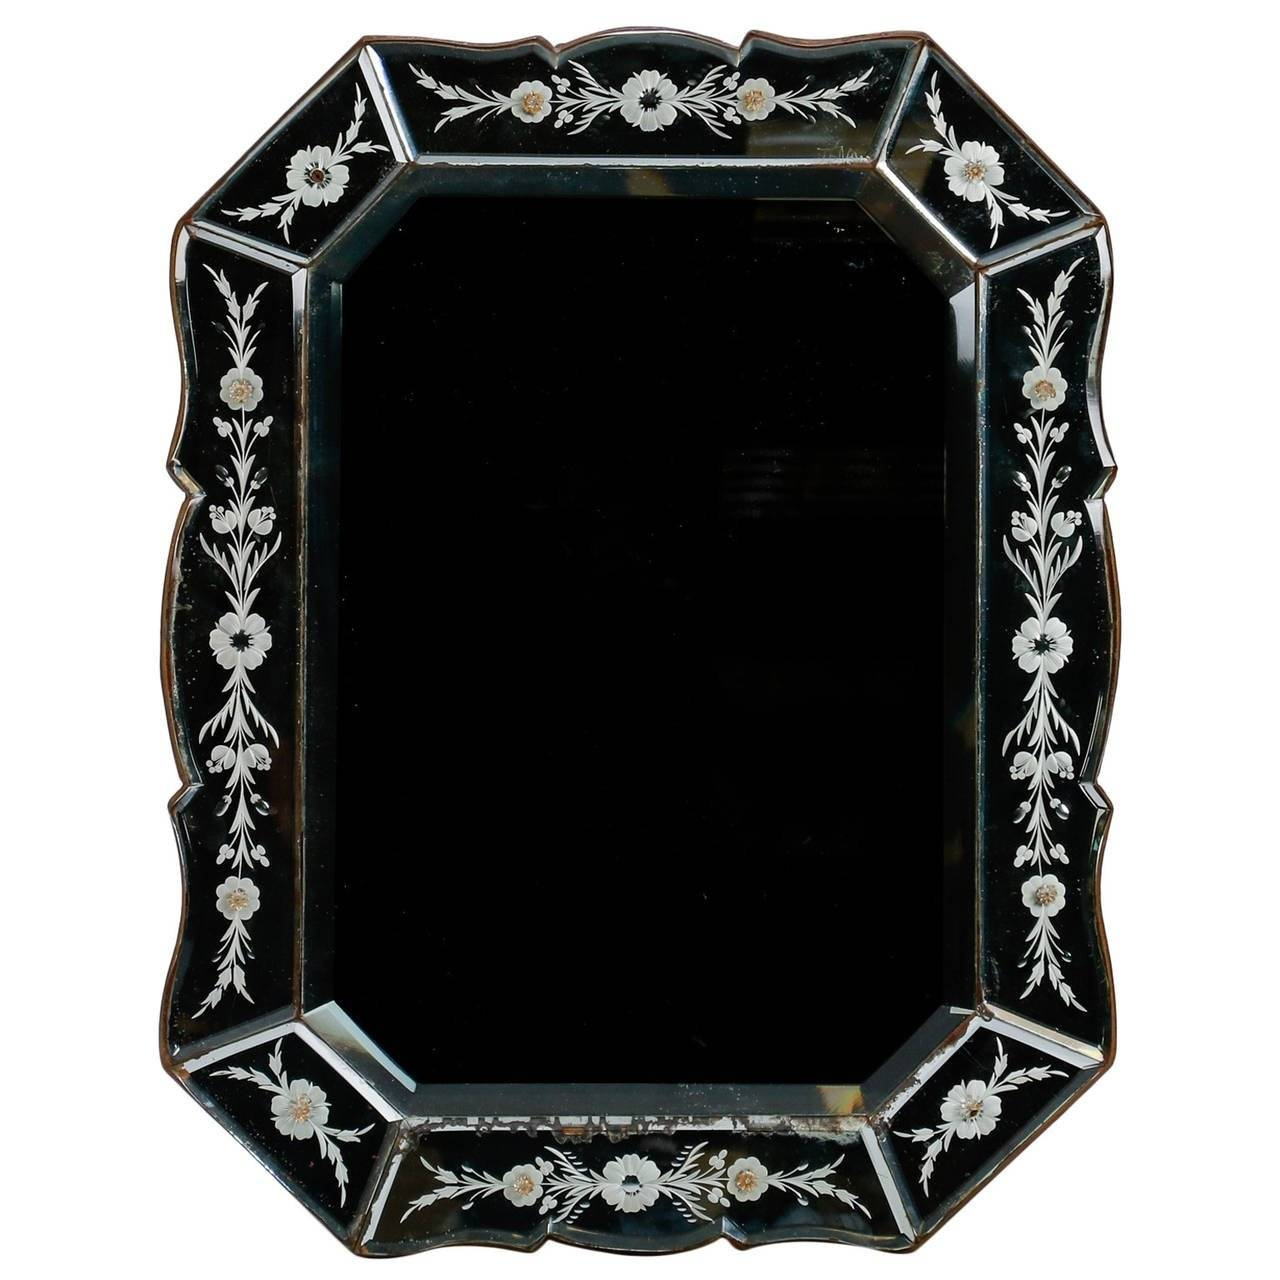 Art Deco Venetian Mirror With Eight-Sided Etched Frame For Sale At throughout Art Deco Venetian Mirrors (Image 11 of 25)